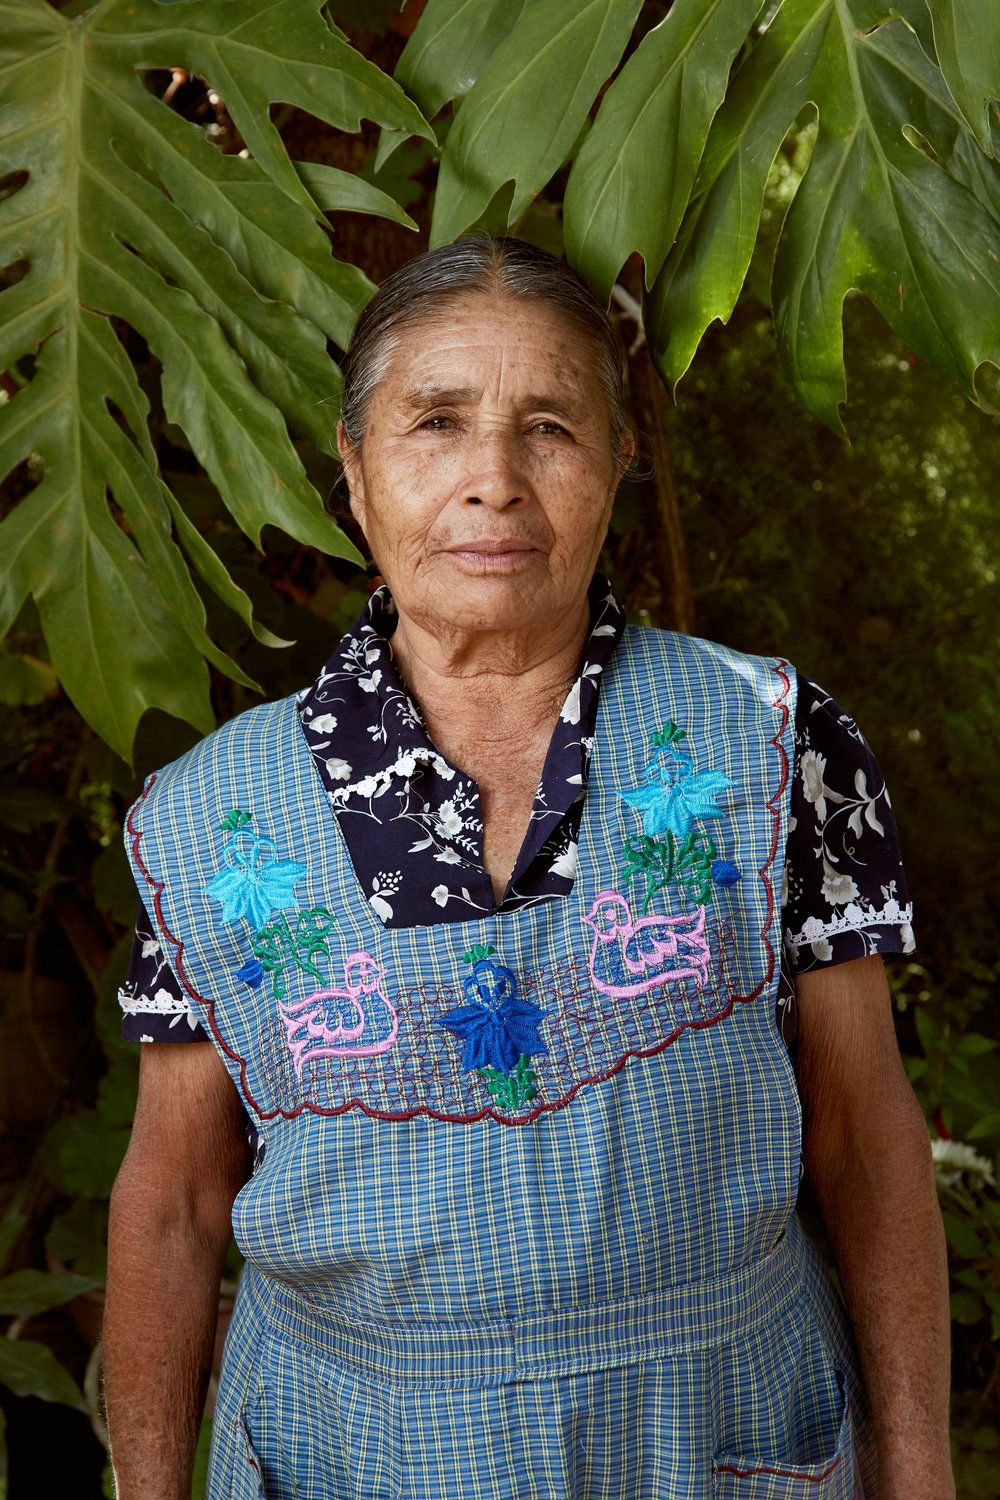 Oaxaca: Images of artisans and their craft.